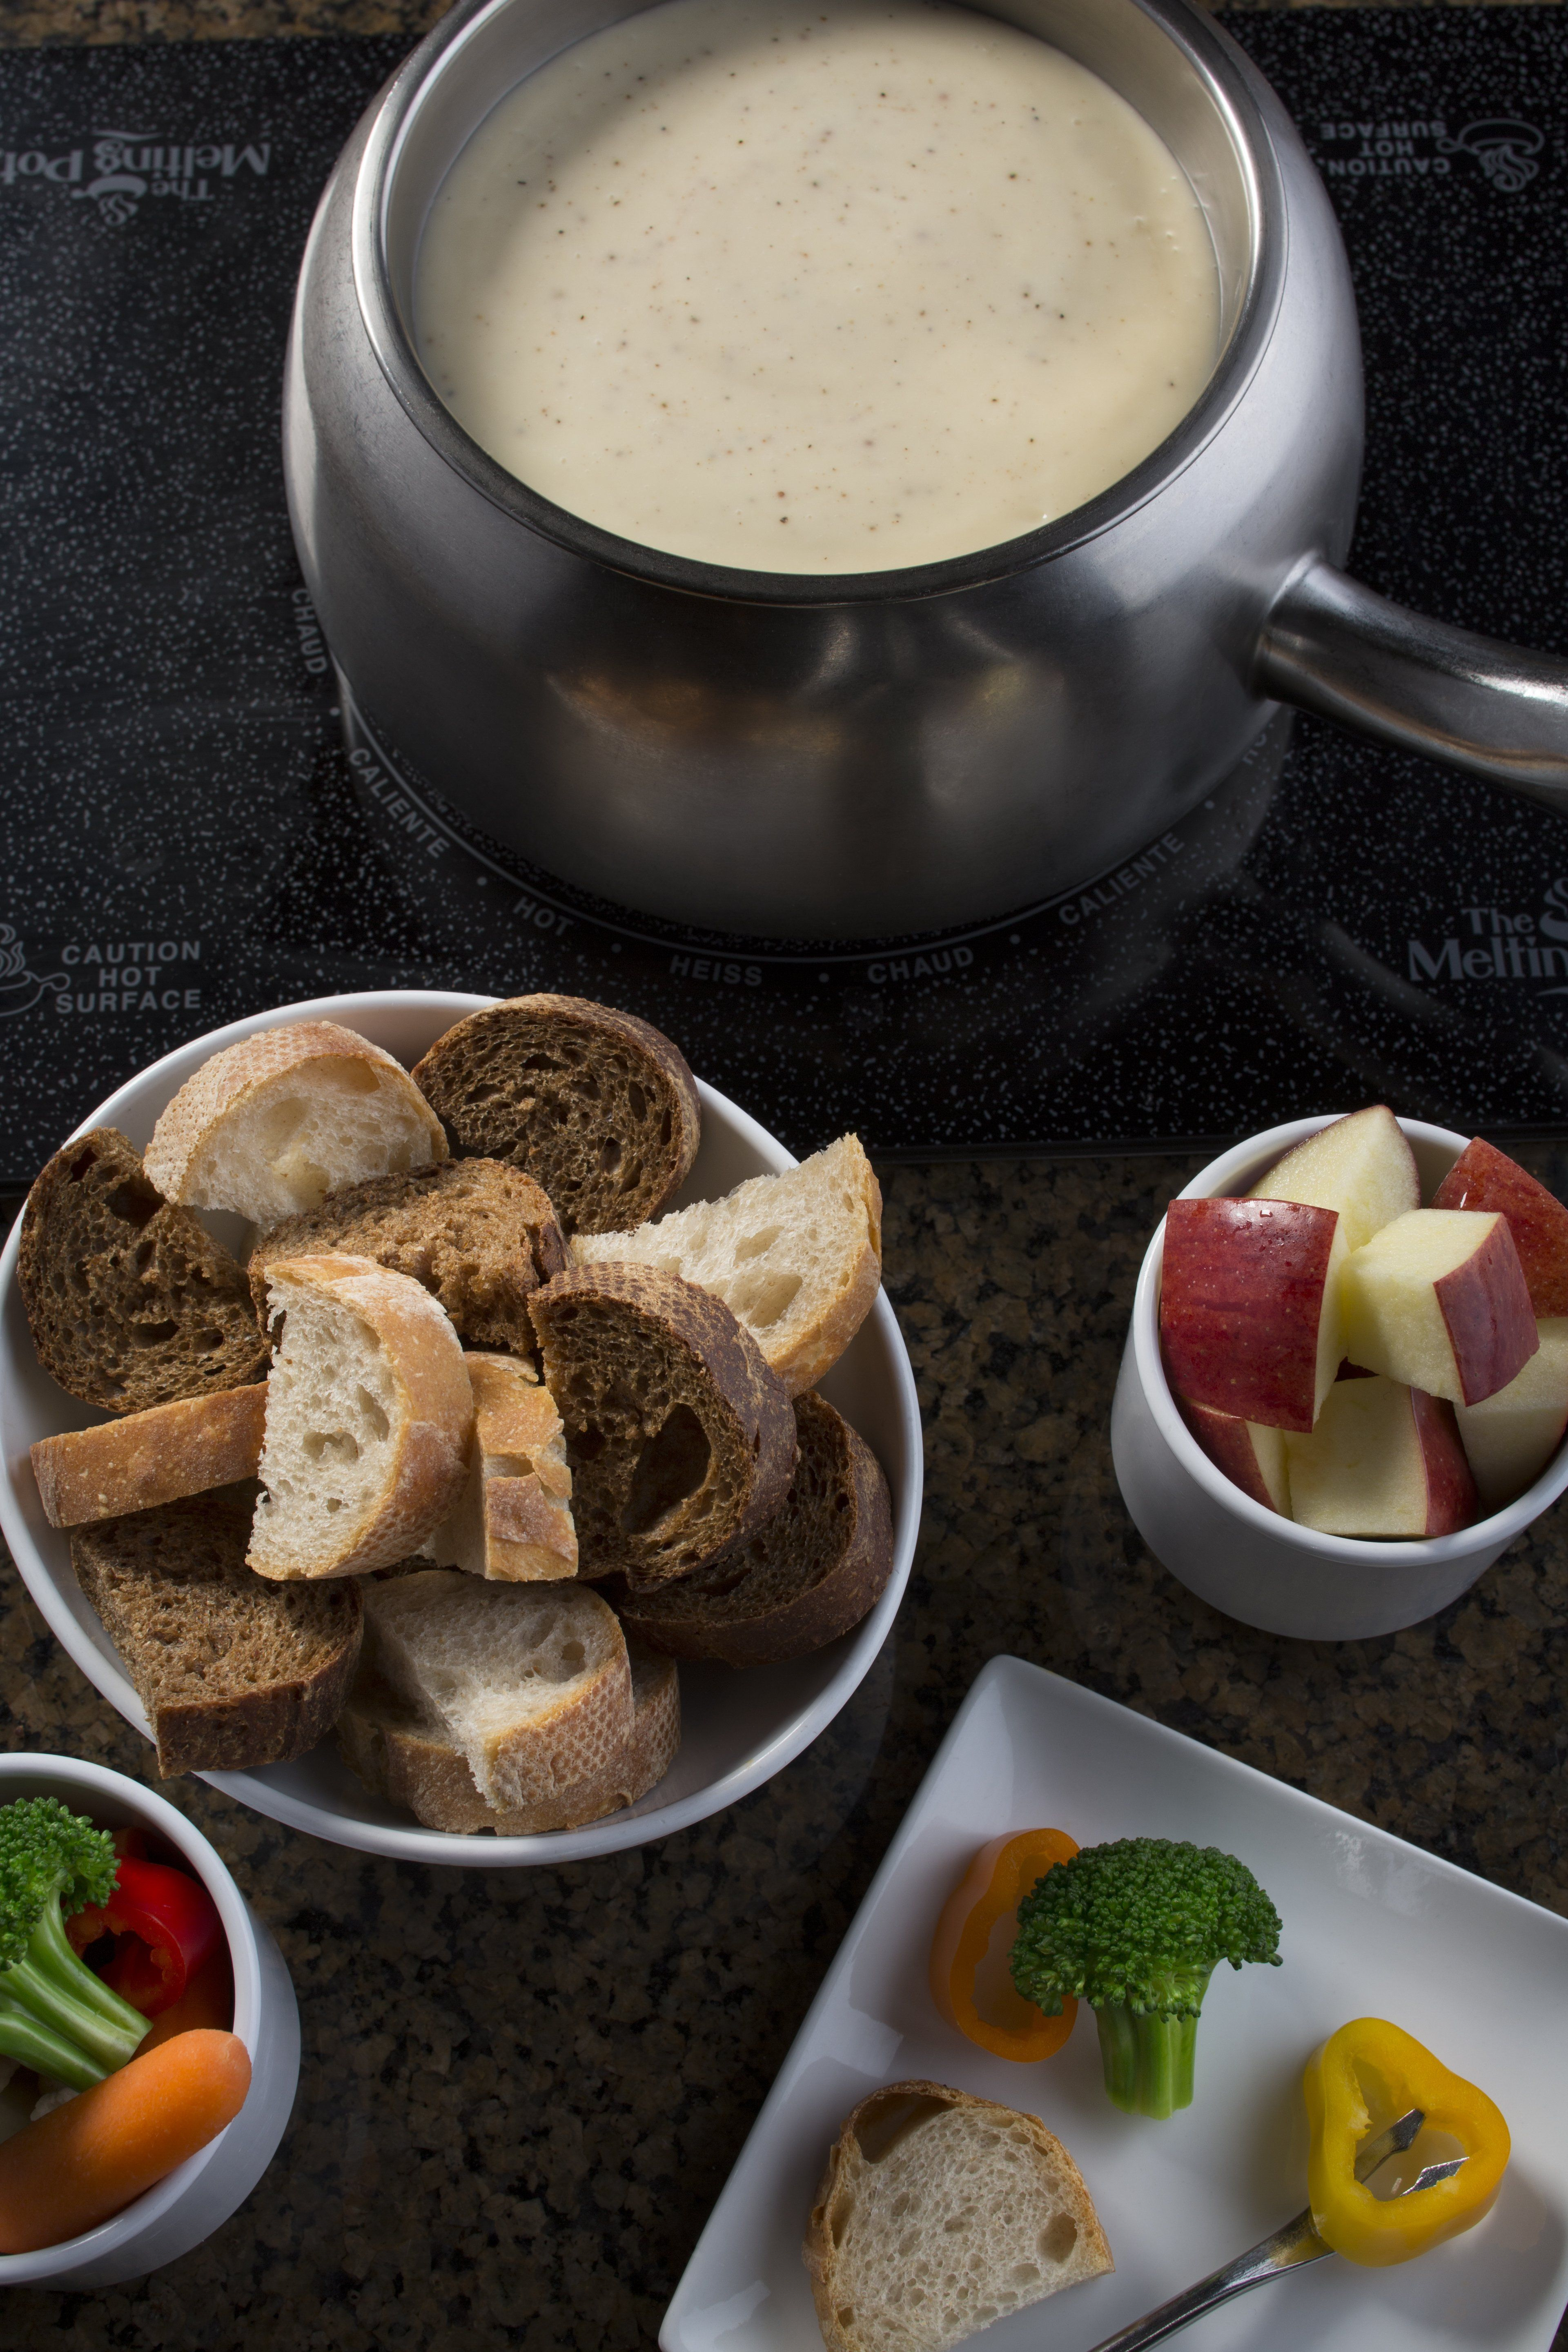 This Casual Restaurant Chain You Ve Probably Never Been To Was Just Named Best In America The Melting Pot Beat Out Restaurants Like Cheesecake Factory